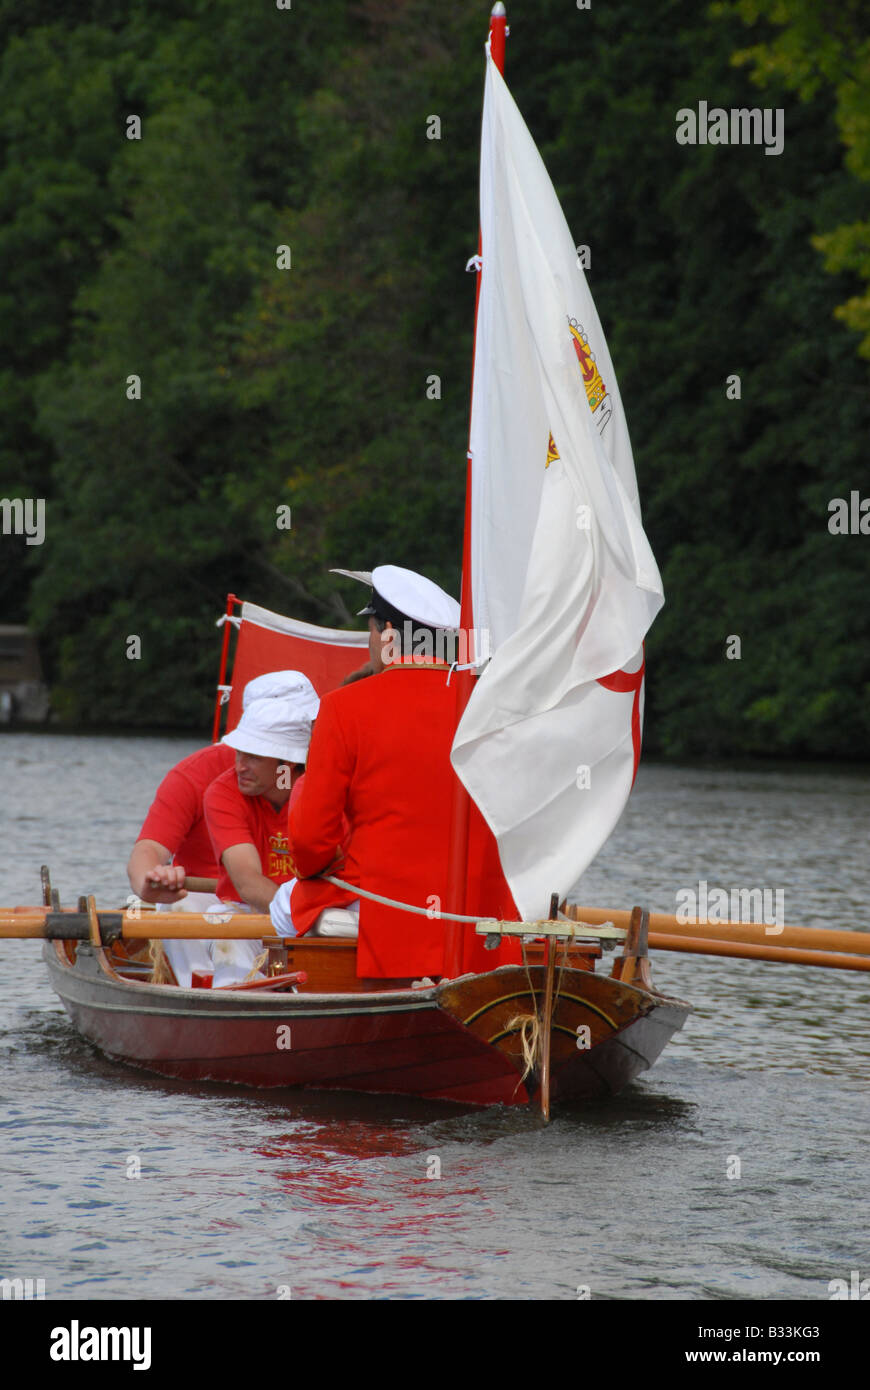 The Queen's swan marker, David Barber sitting at the helm of his skiff during the  Swan Upping on the River - Stock Image